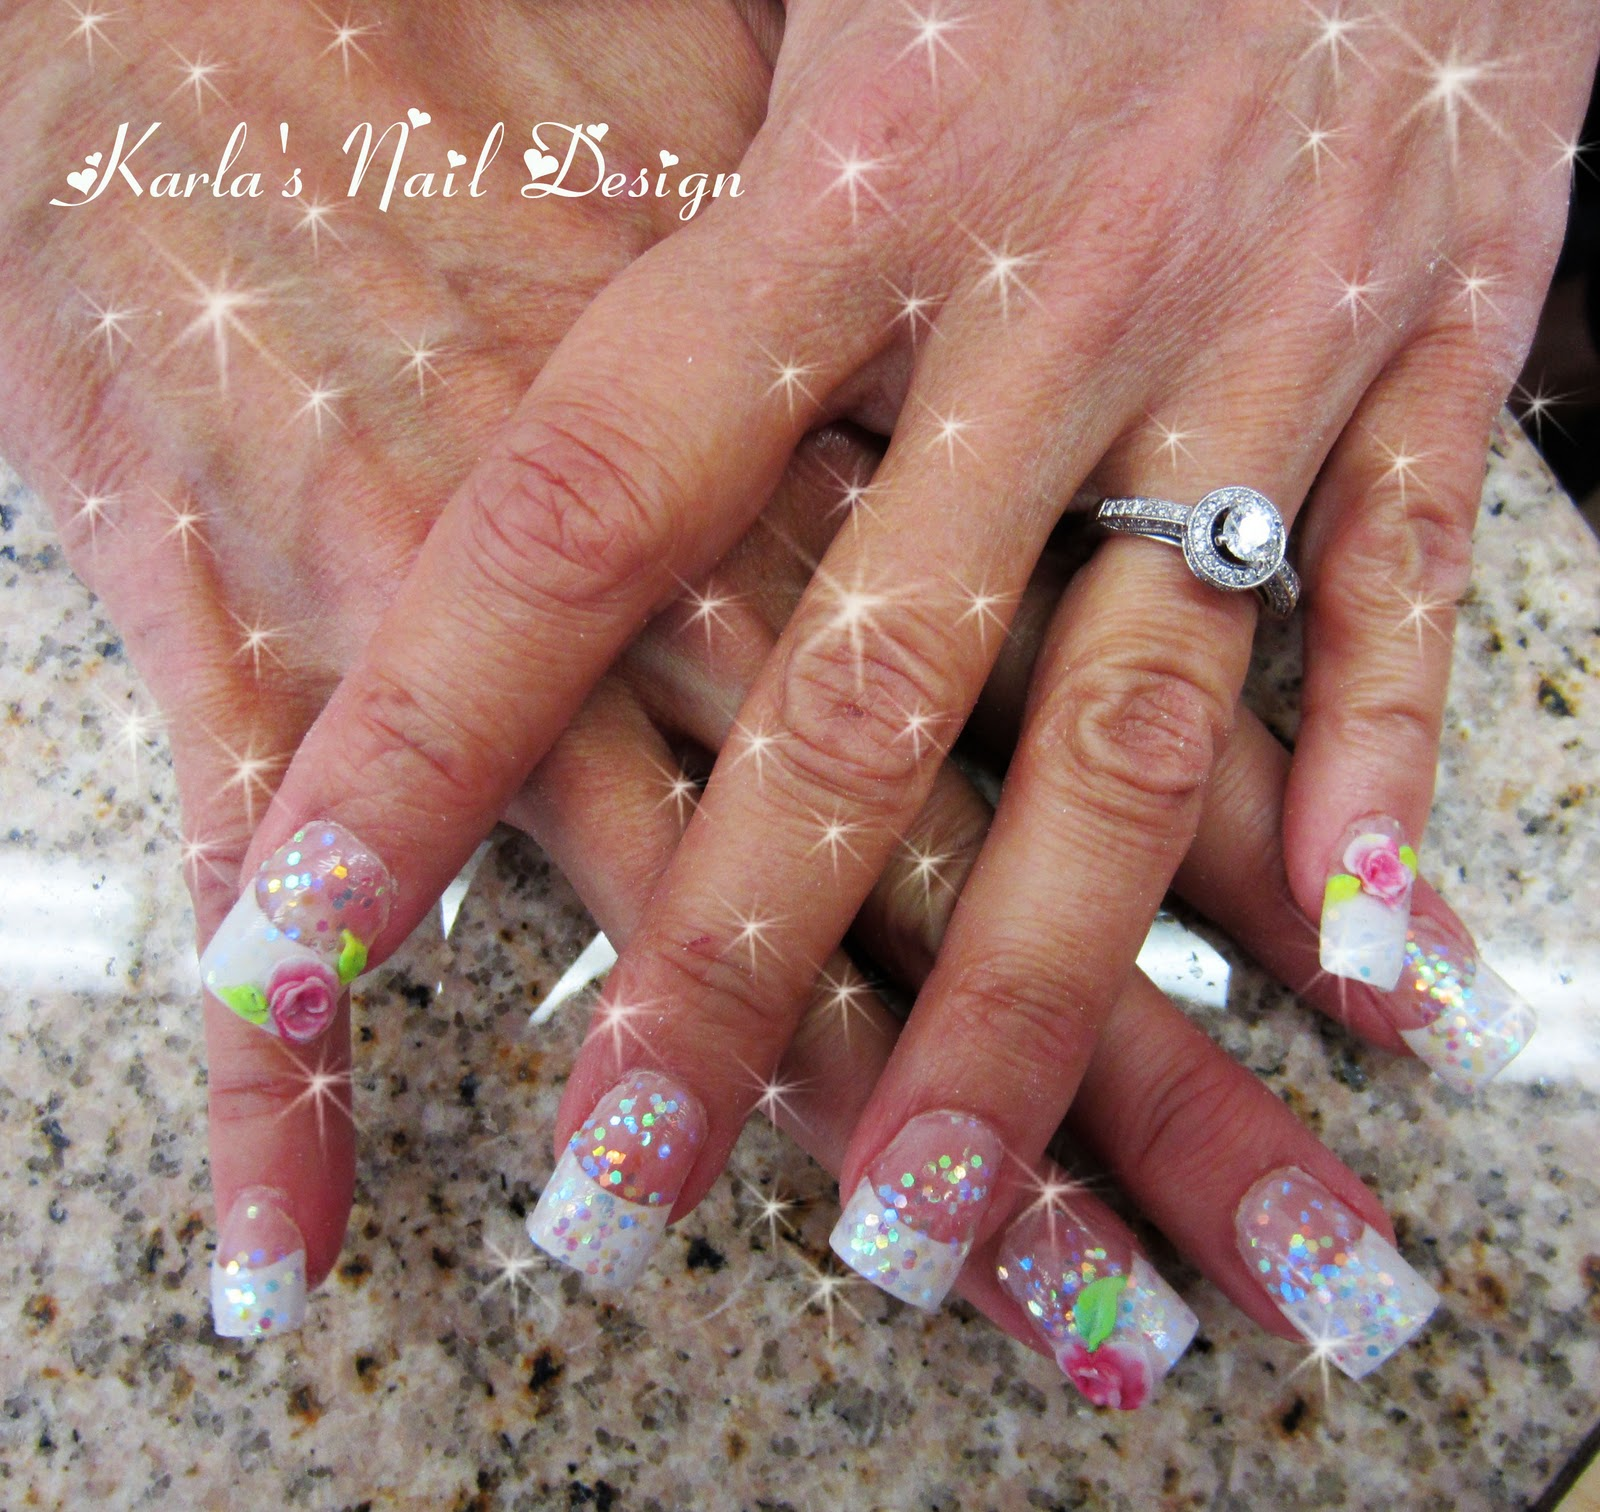 White tip nail designs pccala did acrylic nails with white tips on classmate karen hinson topped it prinsesfo Images